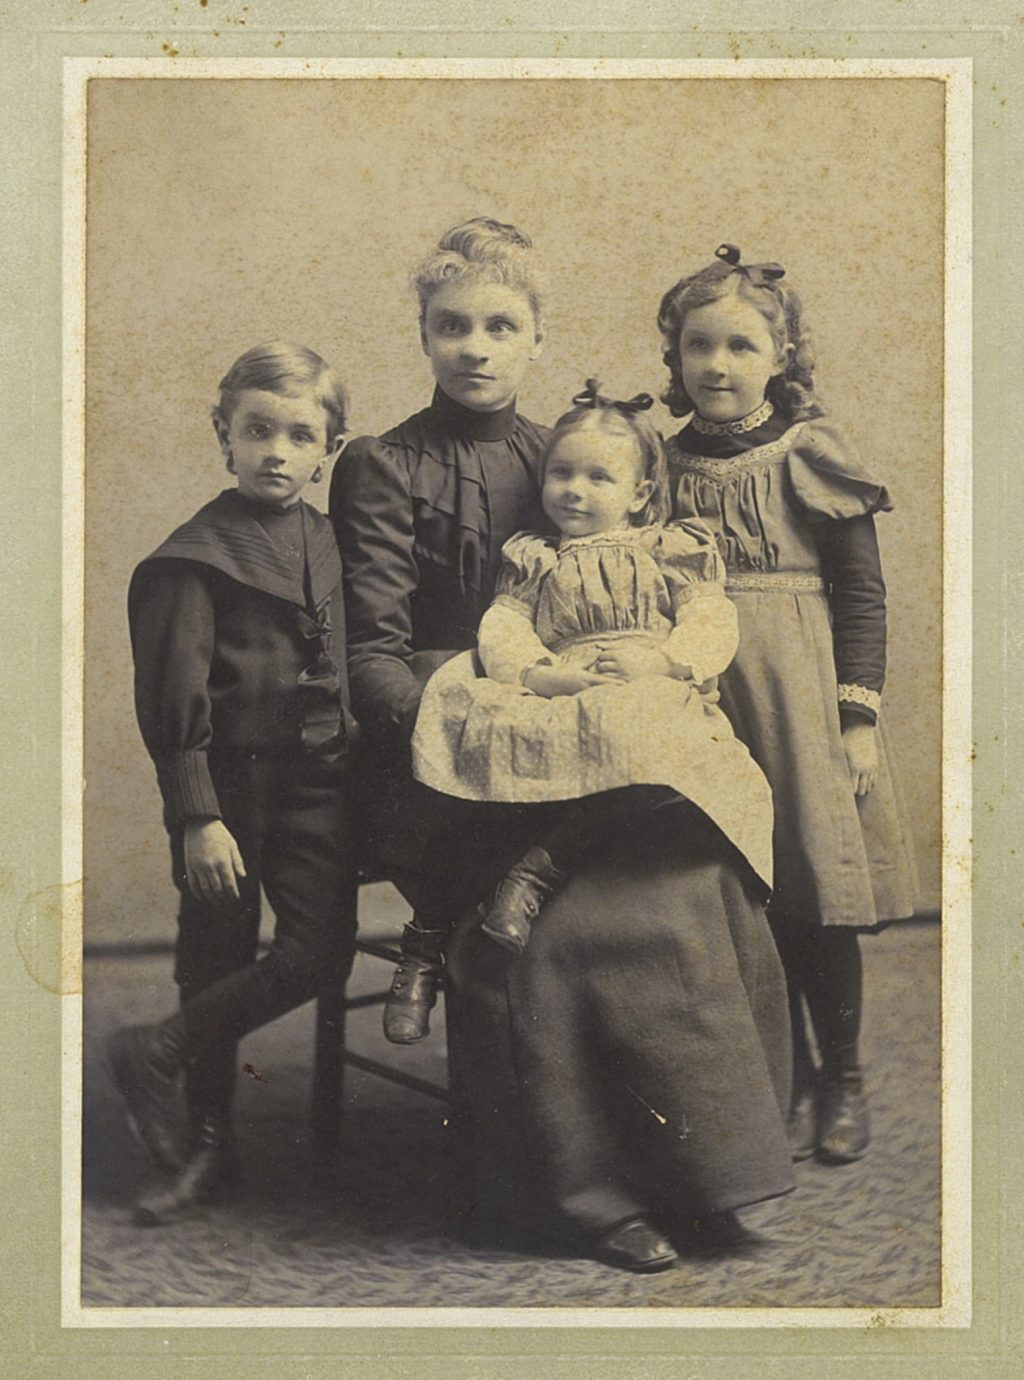 Fernald and her three children pose for a photo